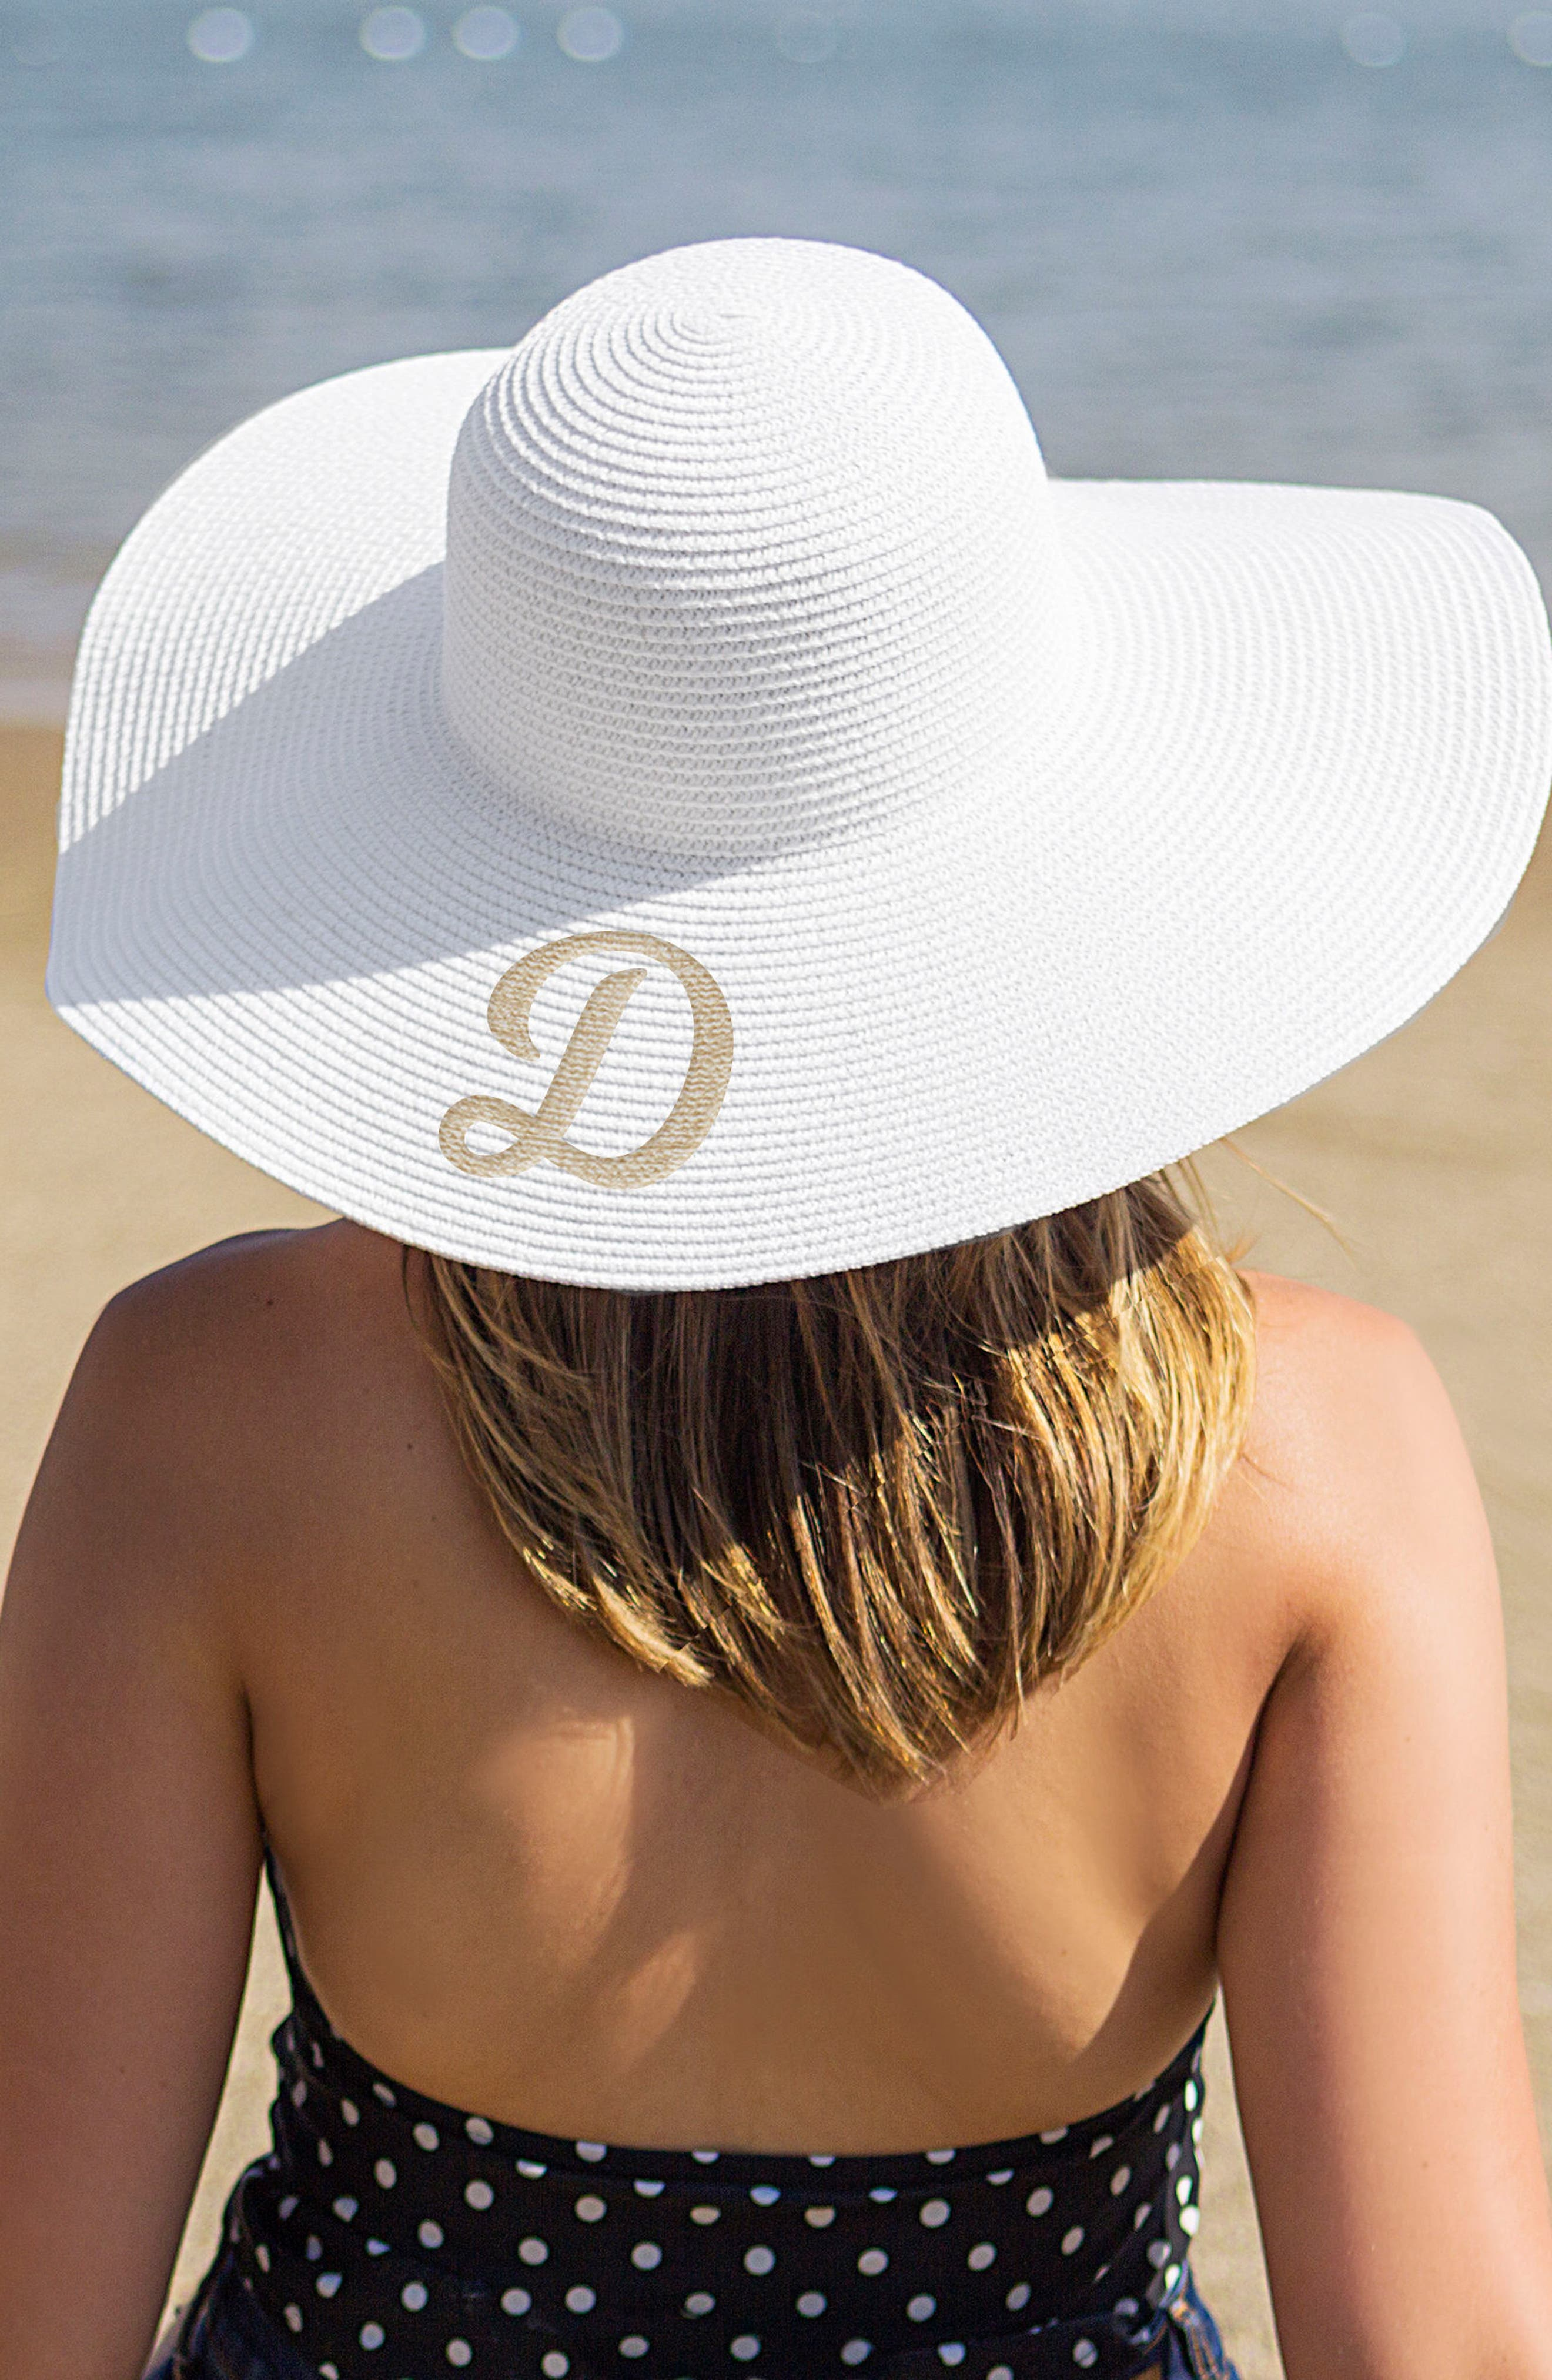 Cathy's Concepts Monogram Straw Sun Hat